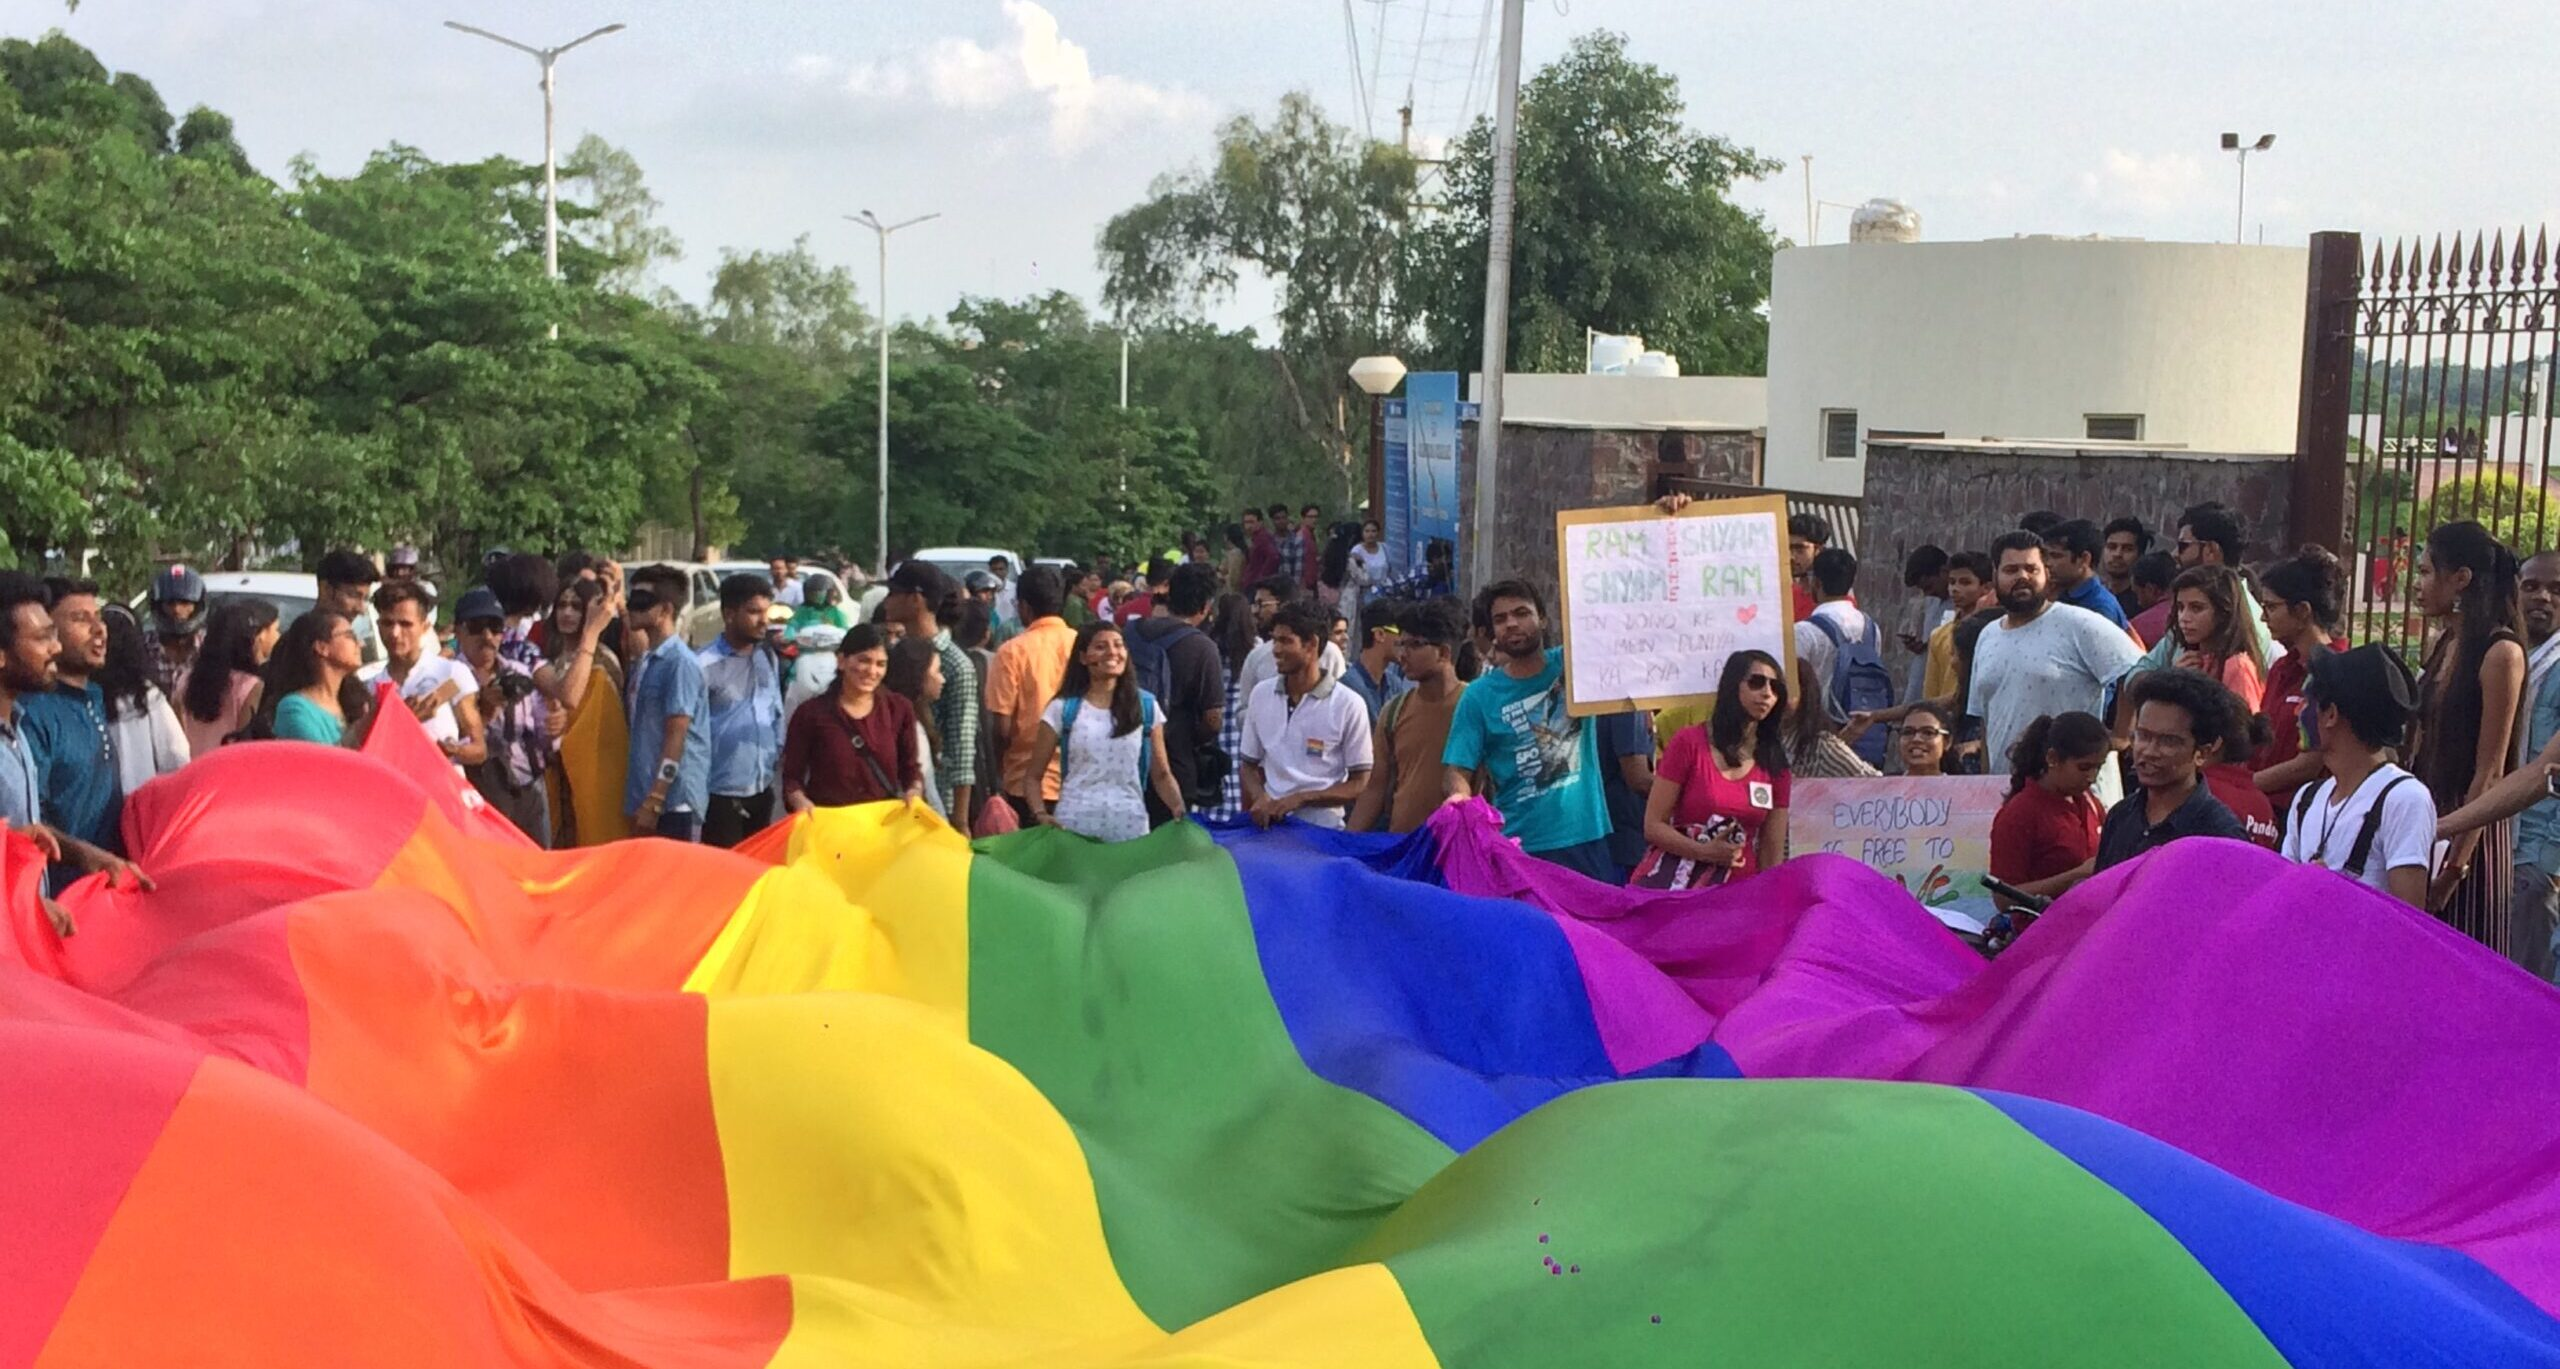 QUEER STRUGGLE FOR FREEDOM – Part I